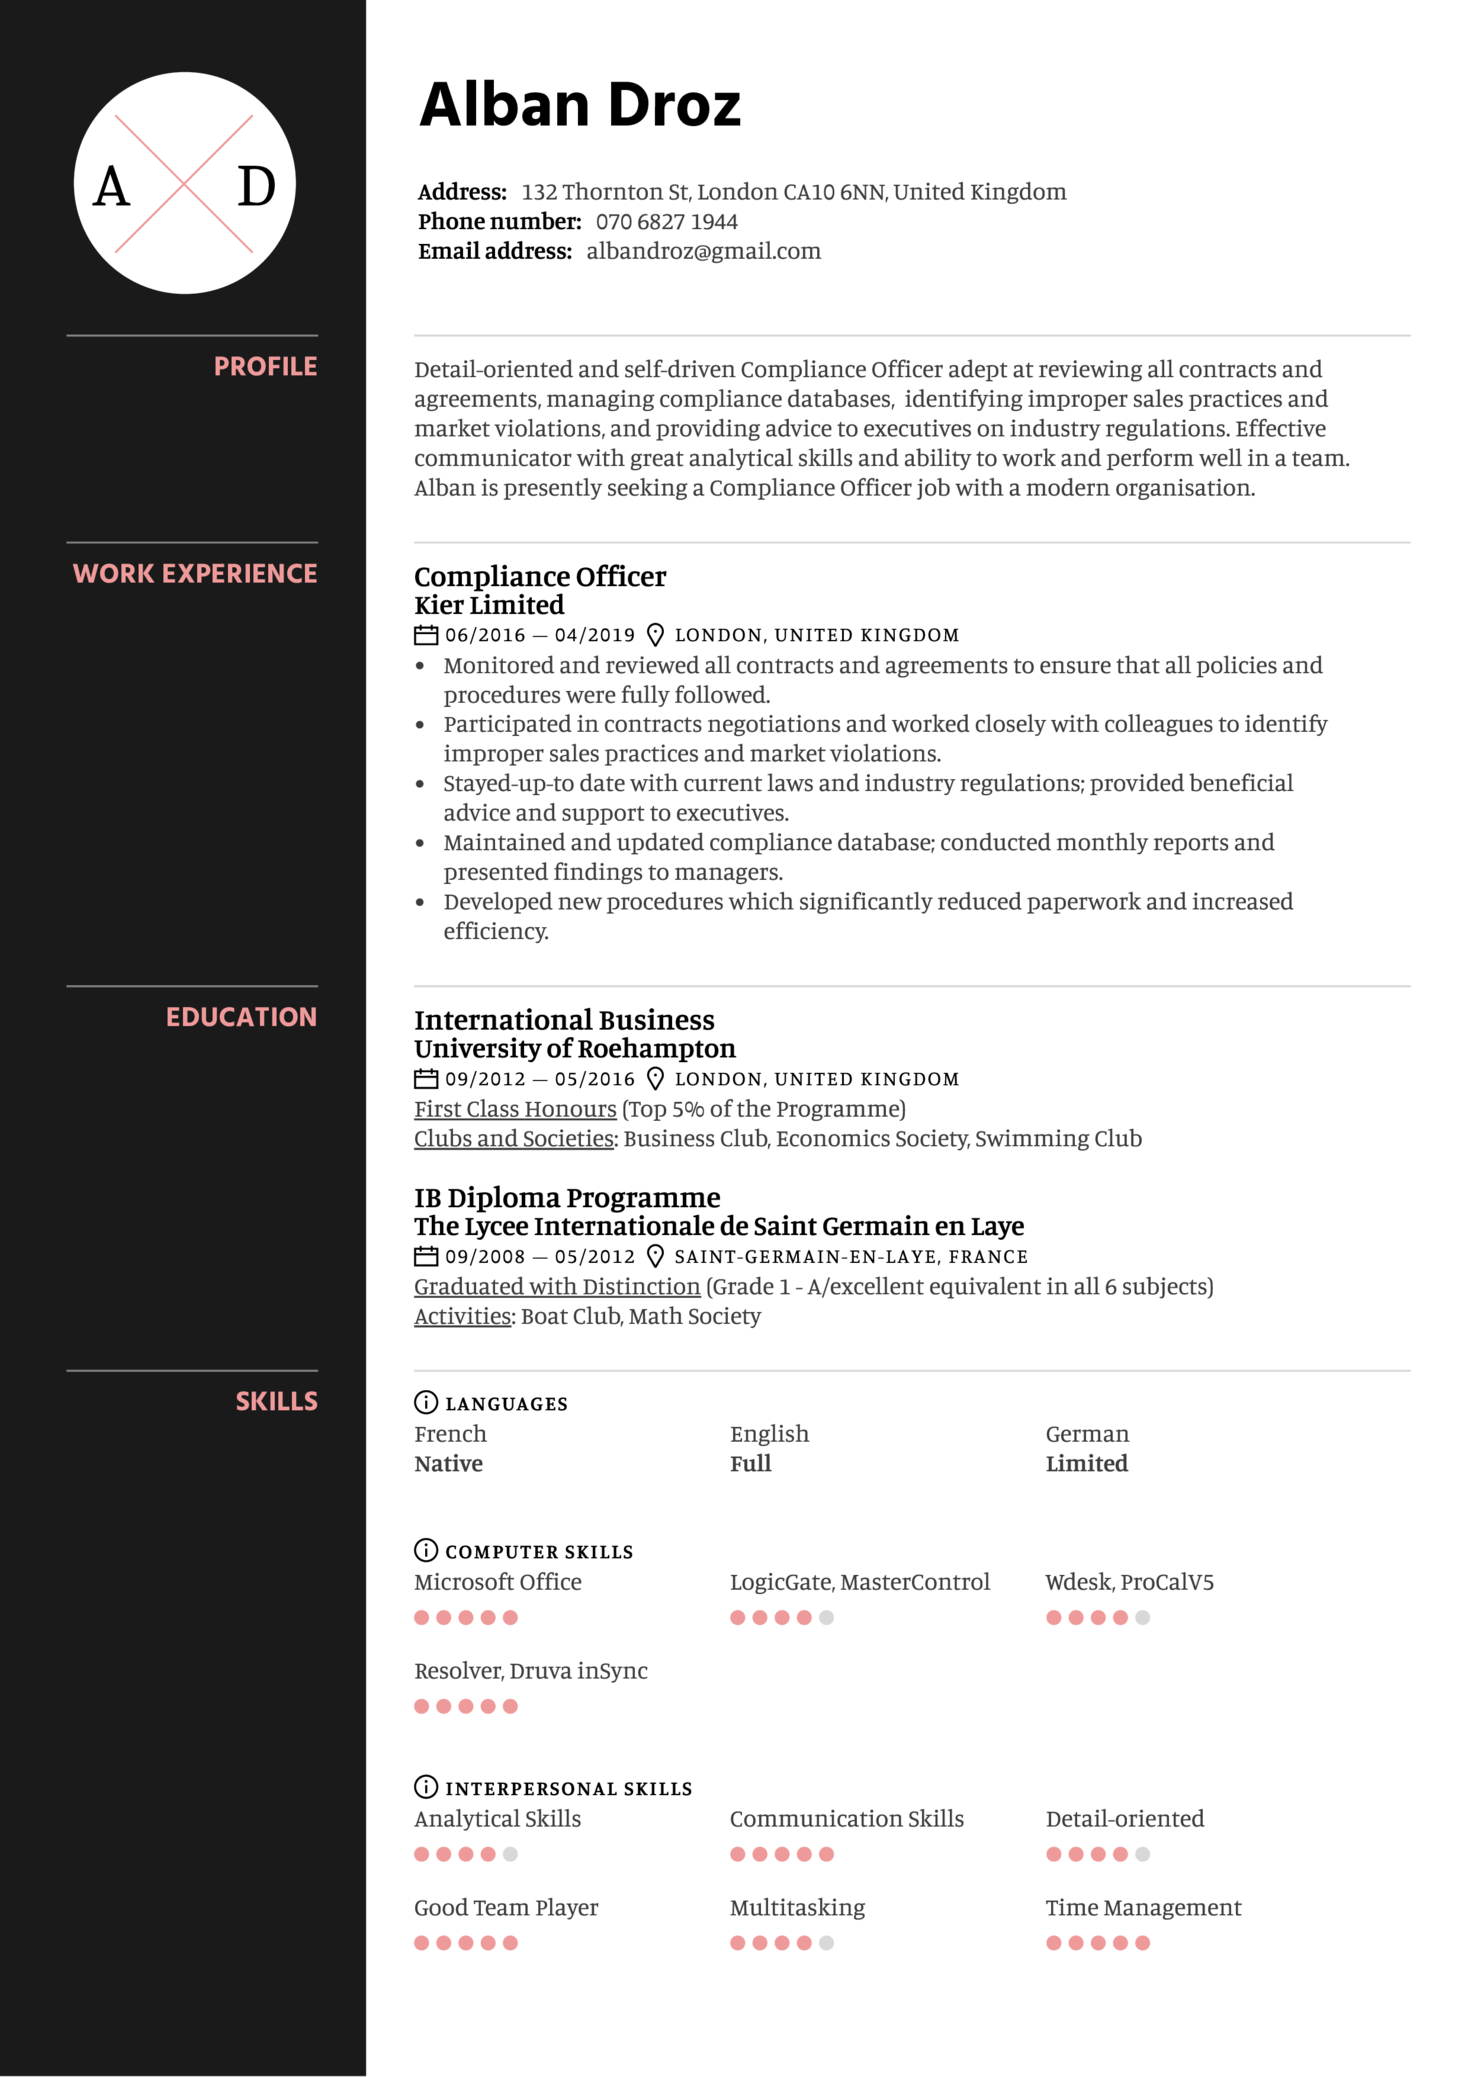 Compliance Officer Resume Template (parte 1)